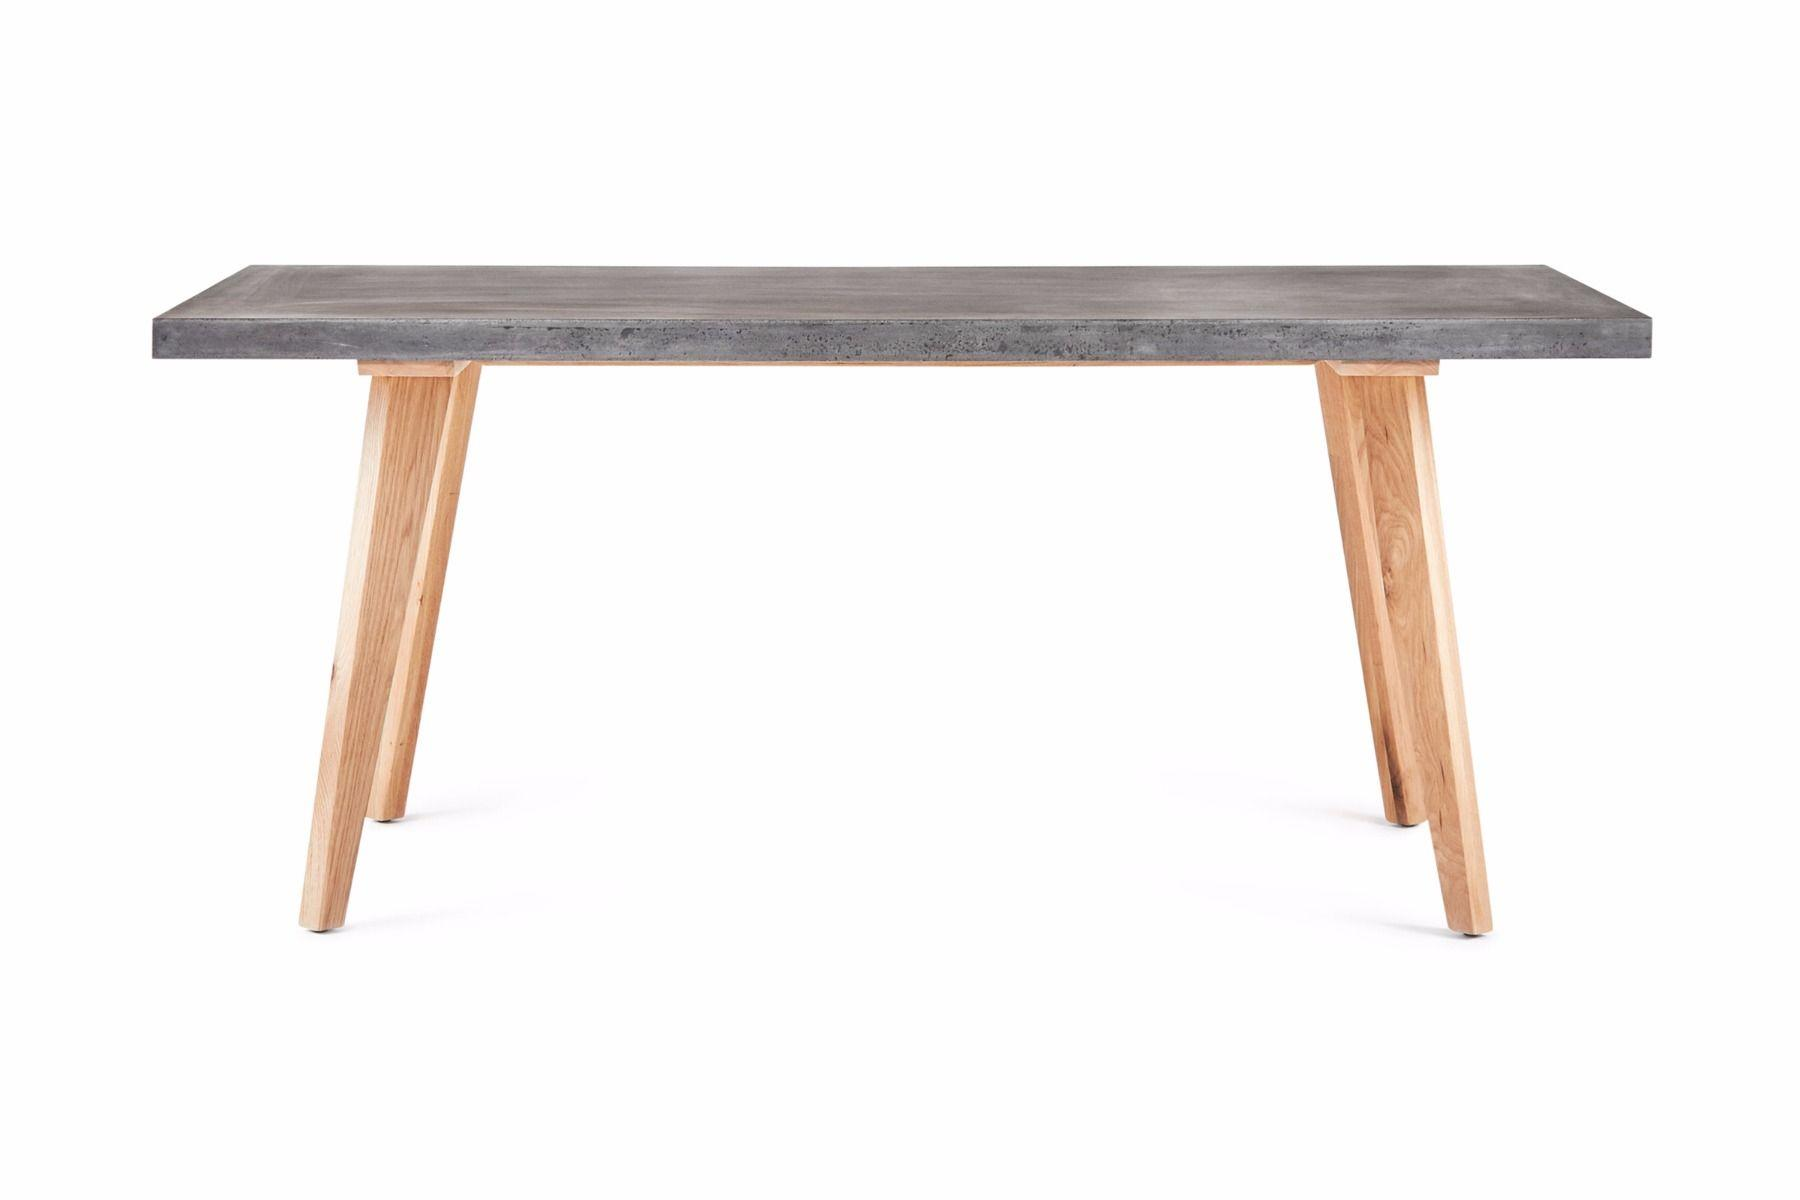 Uno 6S Dining Table by Lounge Lovers, a Dining Tables for sale on Style Sourcebook